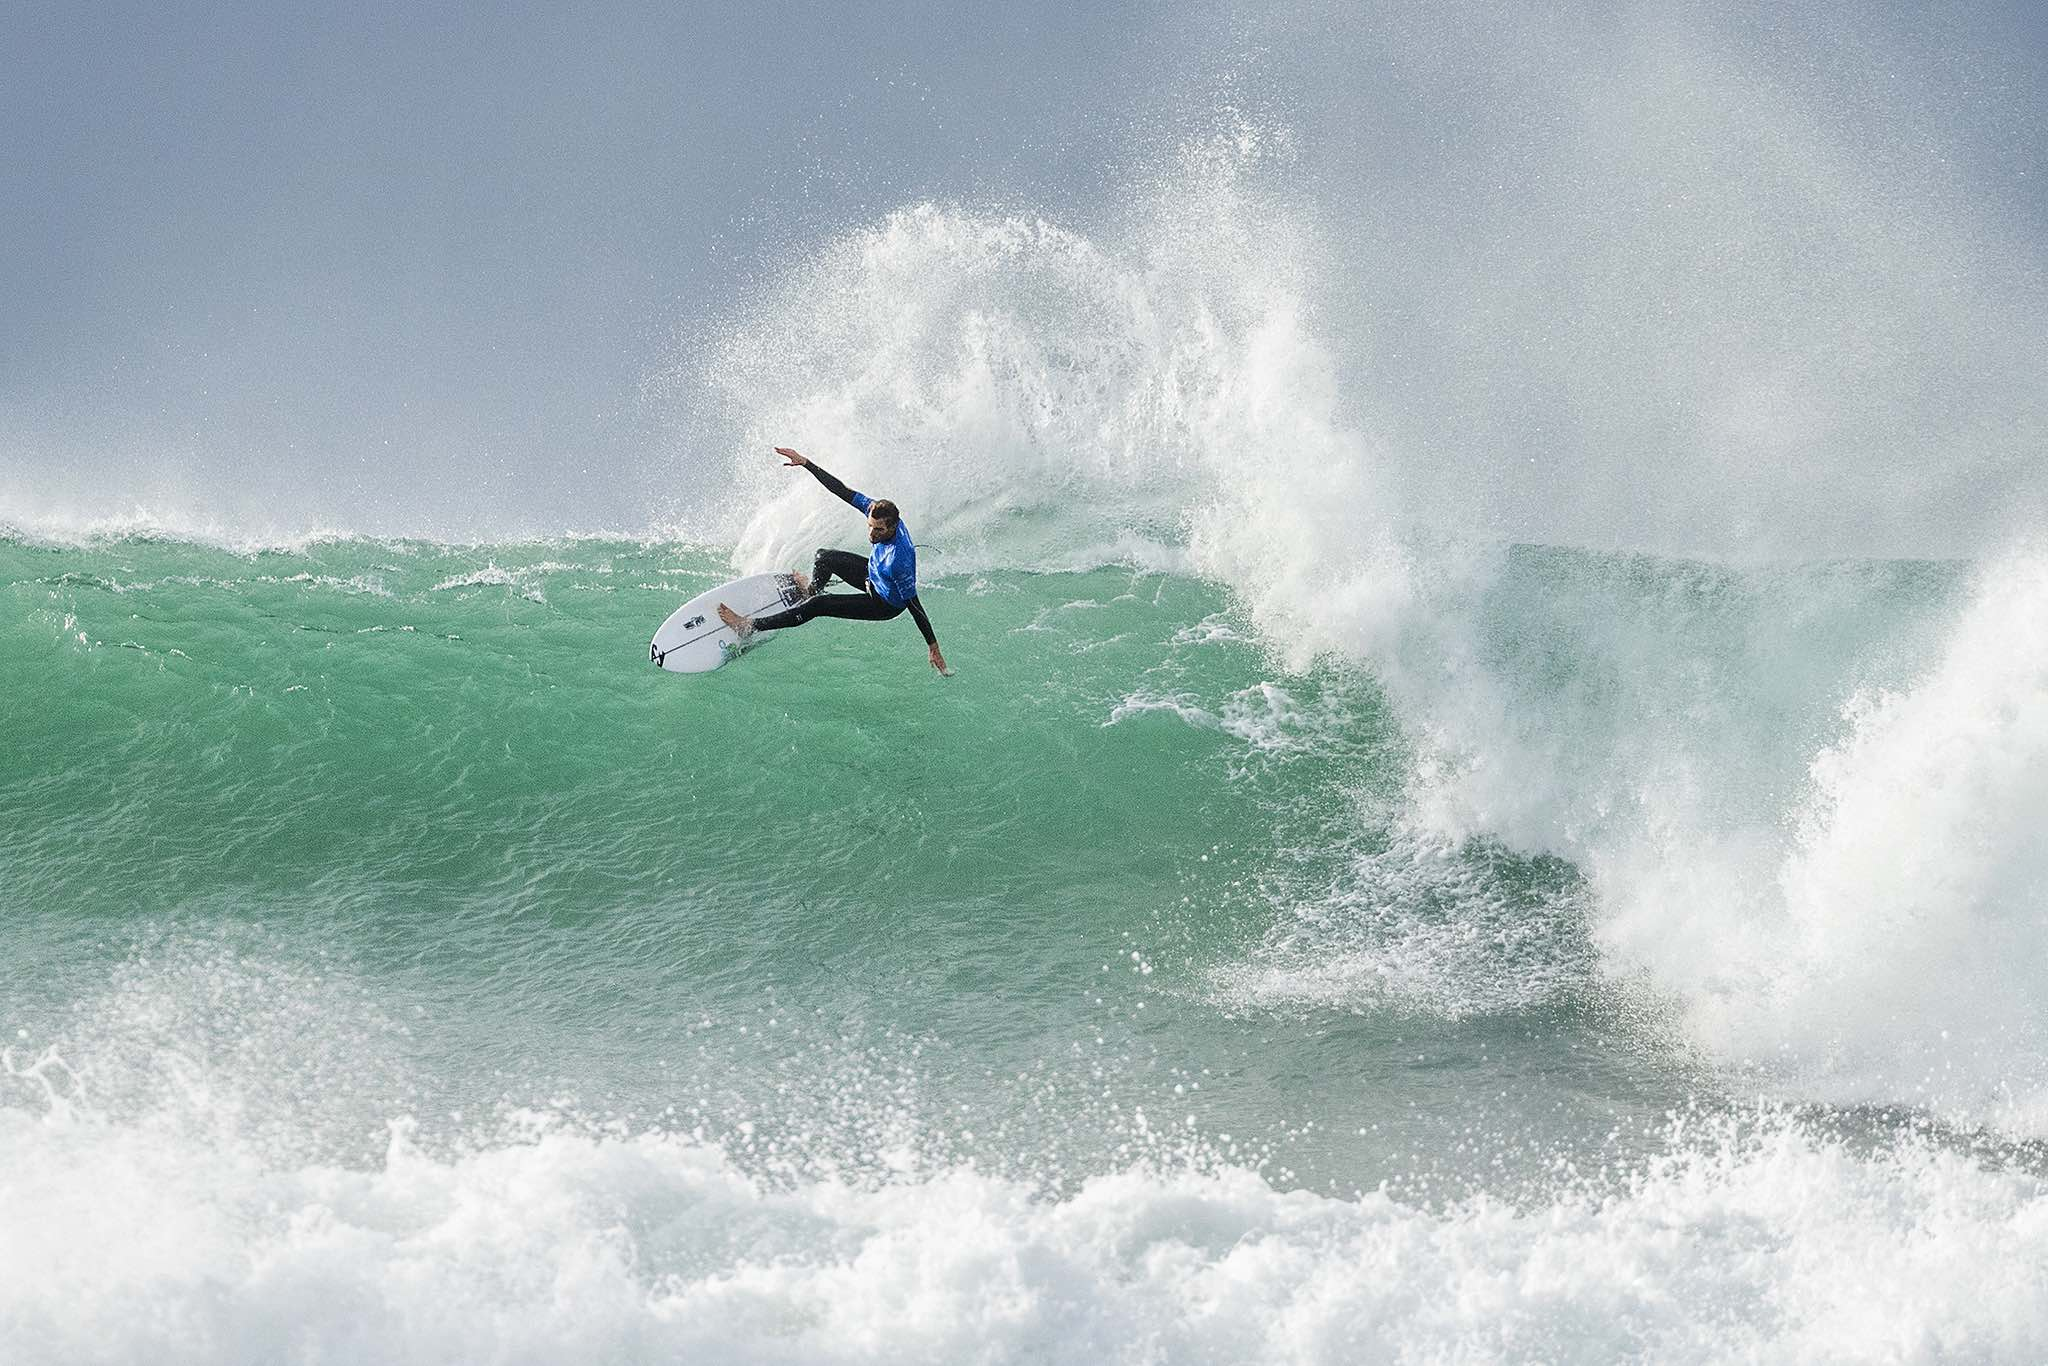 Frederico Morais surfing his way to 2nd place at the Corona Open J-Bay